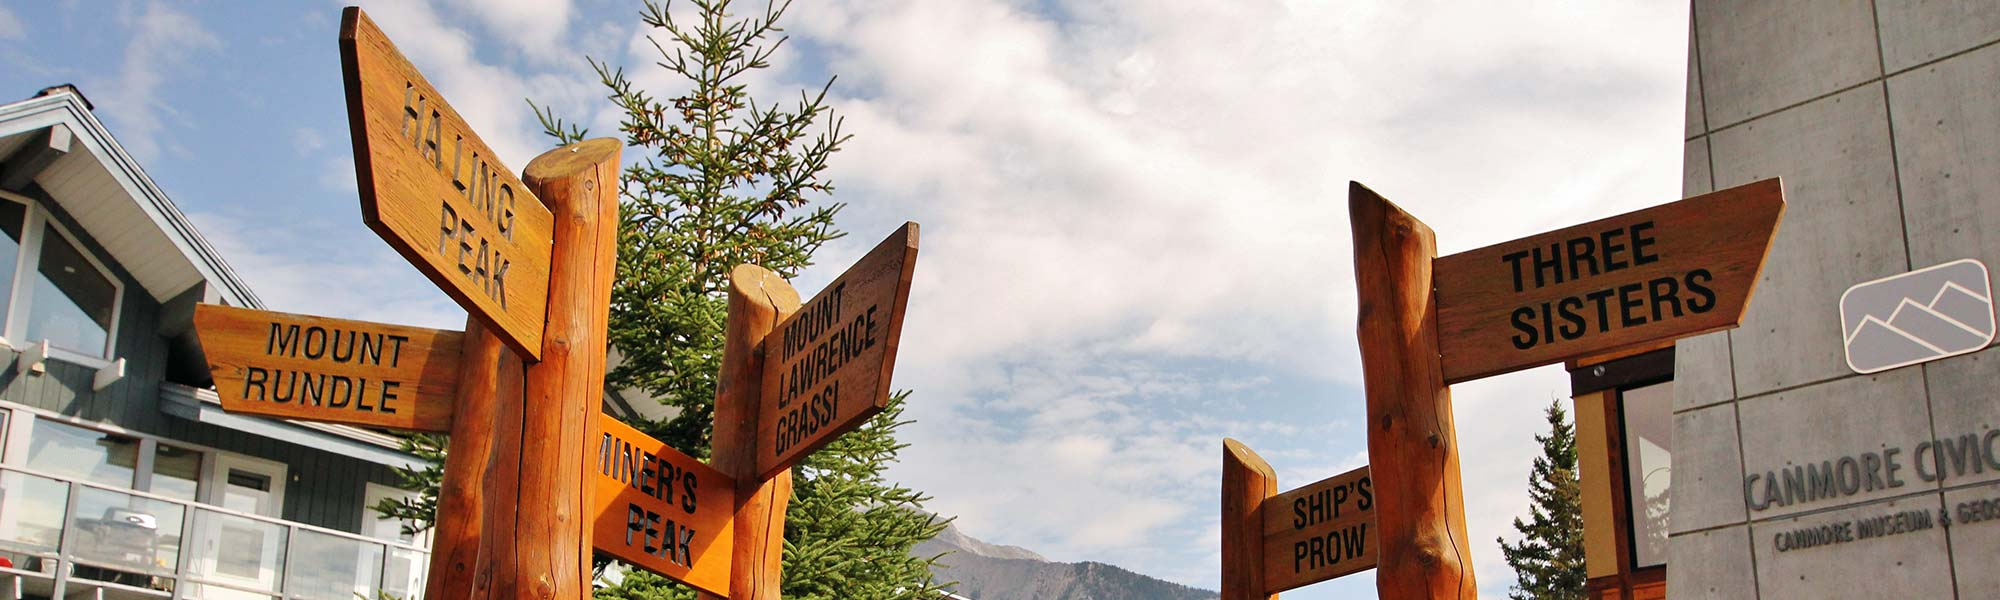 Outside the Canmore Civic Center, signs pointing to different points of interest.